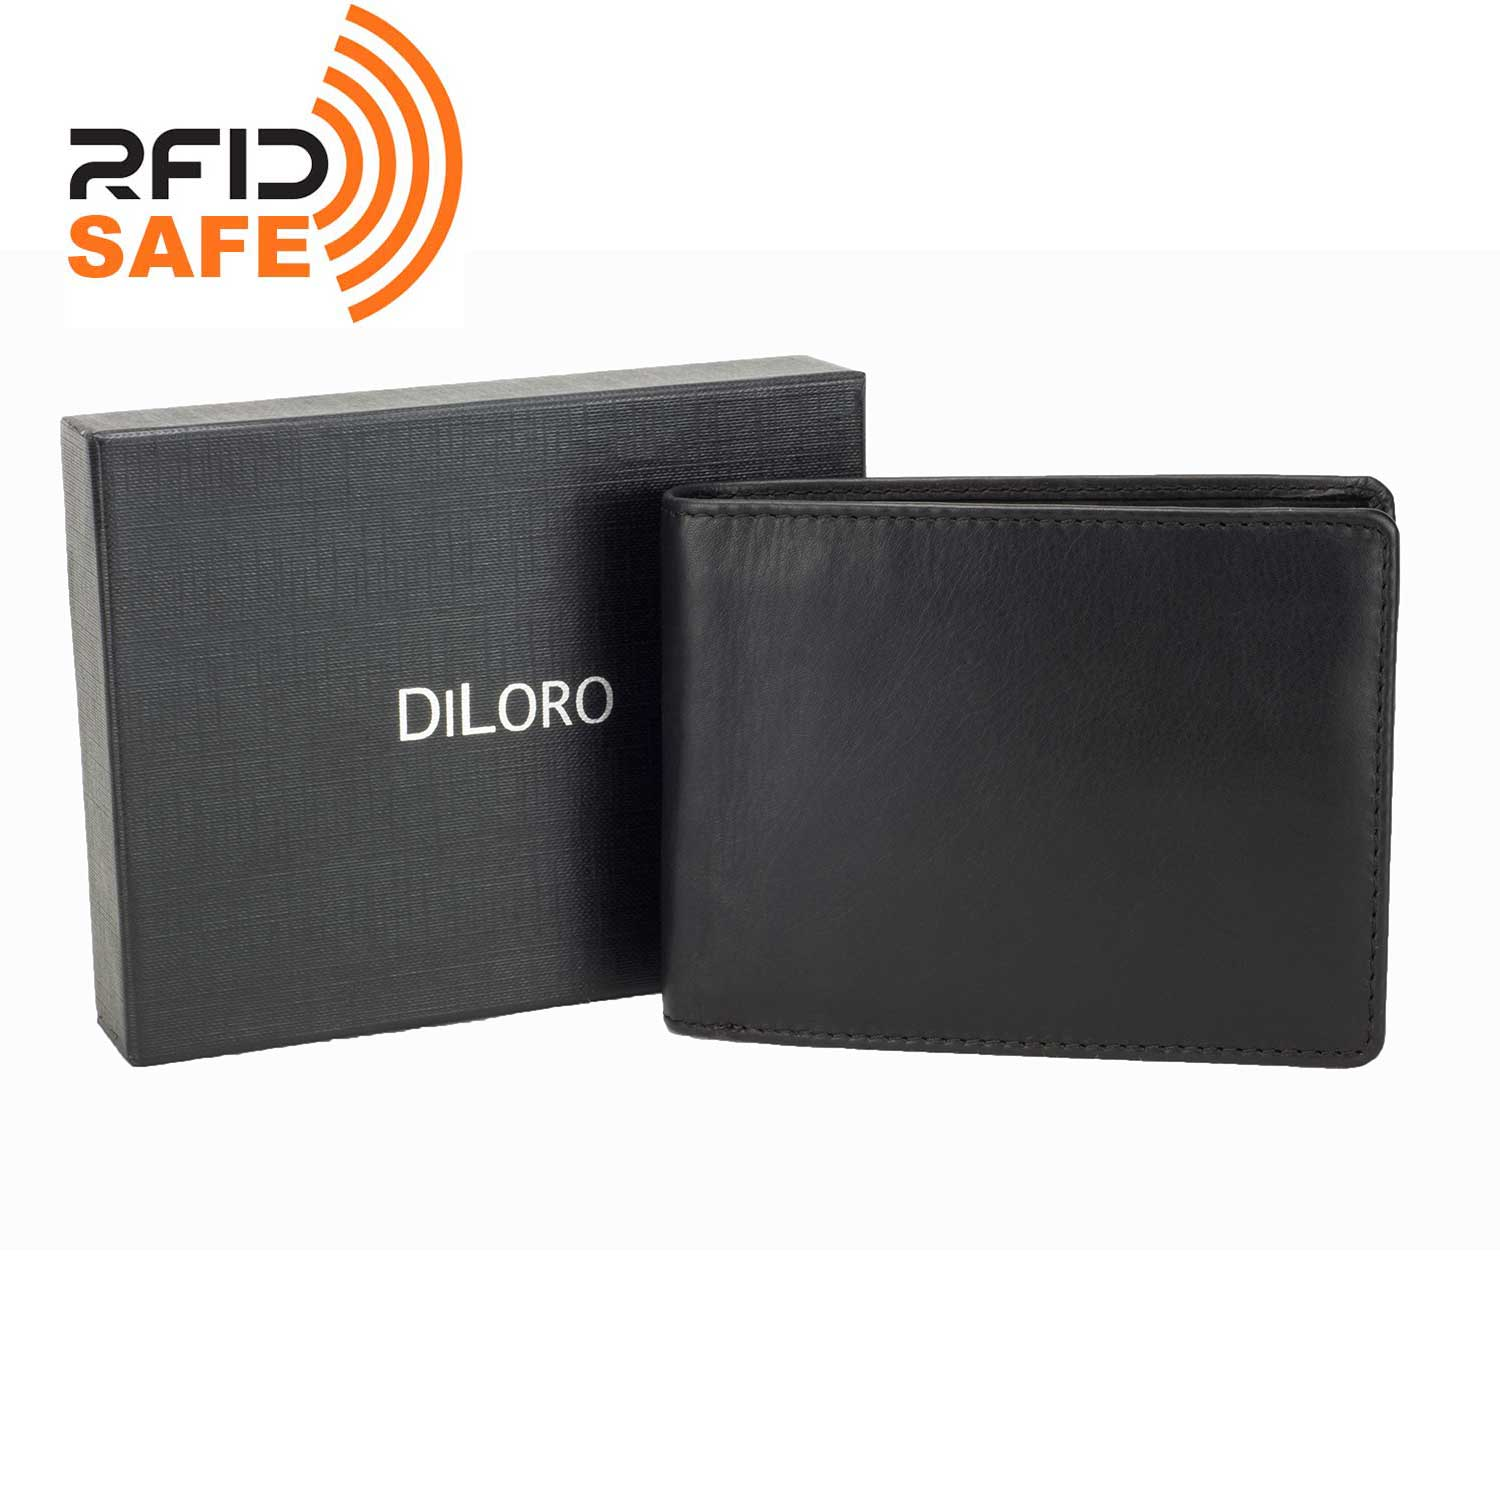 DiLoro Men's Leather Bifold Flip ID Zip Coin Wallet with RFID Protection in Black. Full grain nappa leather - best quality leather! SKU 1808 with DiLoro Gift Box.